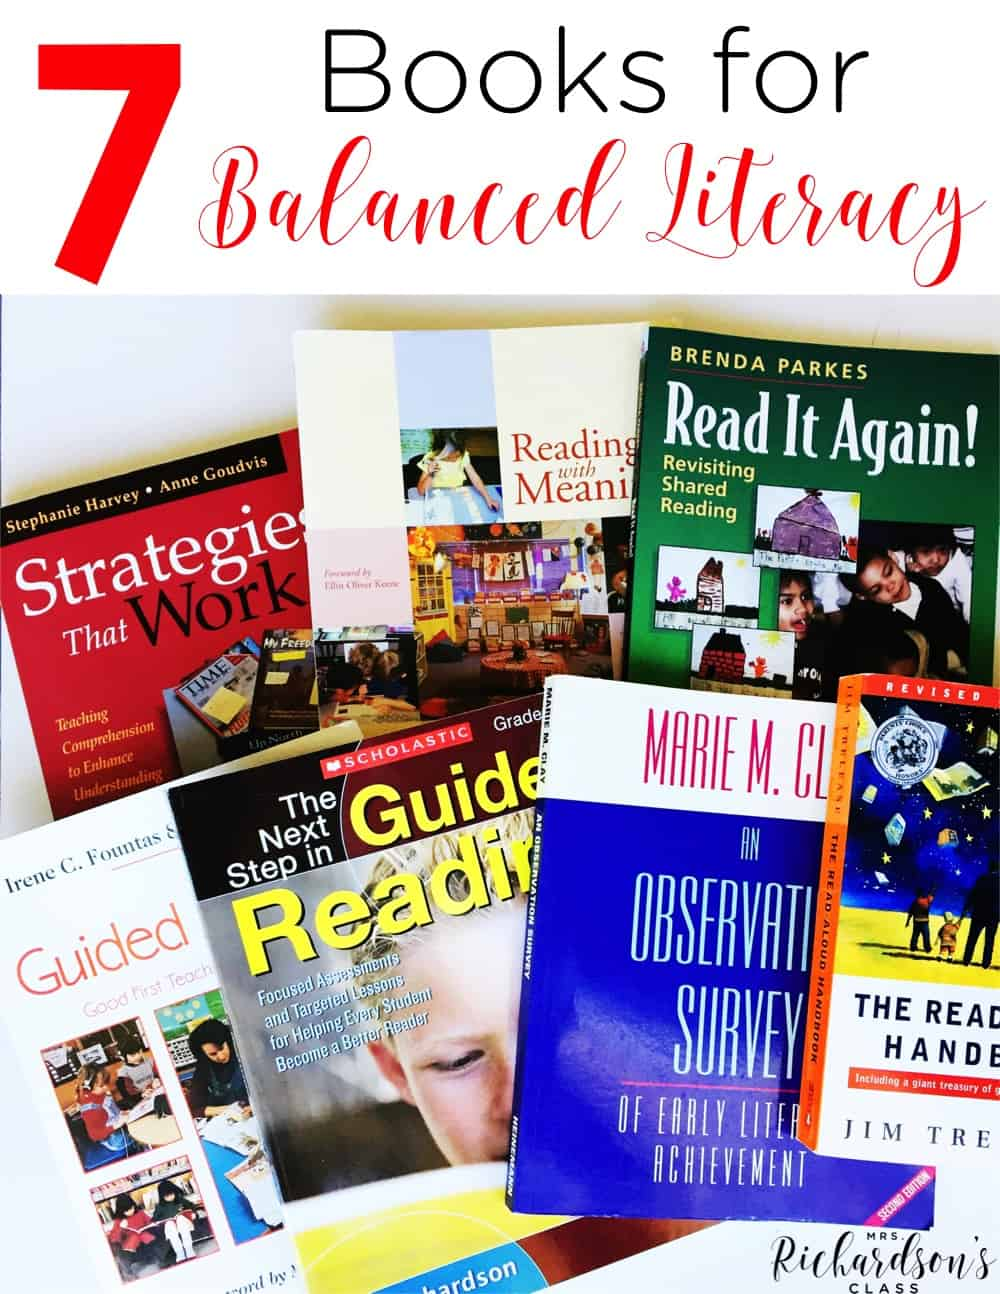 If you are looking to dig your feet into balanced literacy, these books are for you! They are easy reads, filled with great info, and helped me so much! These books for balanced literacy are must-haves!